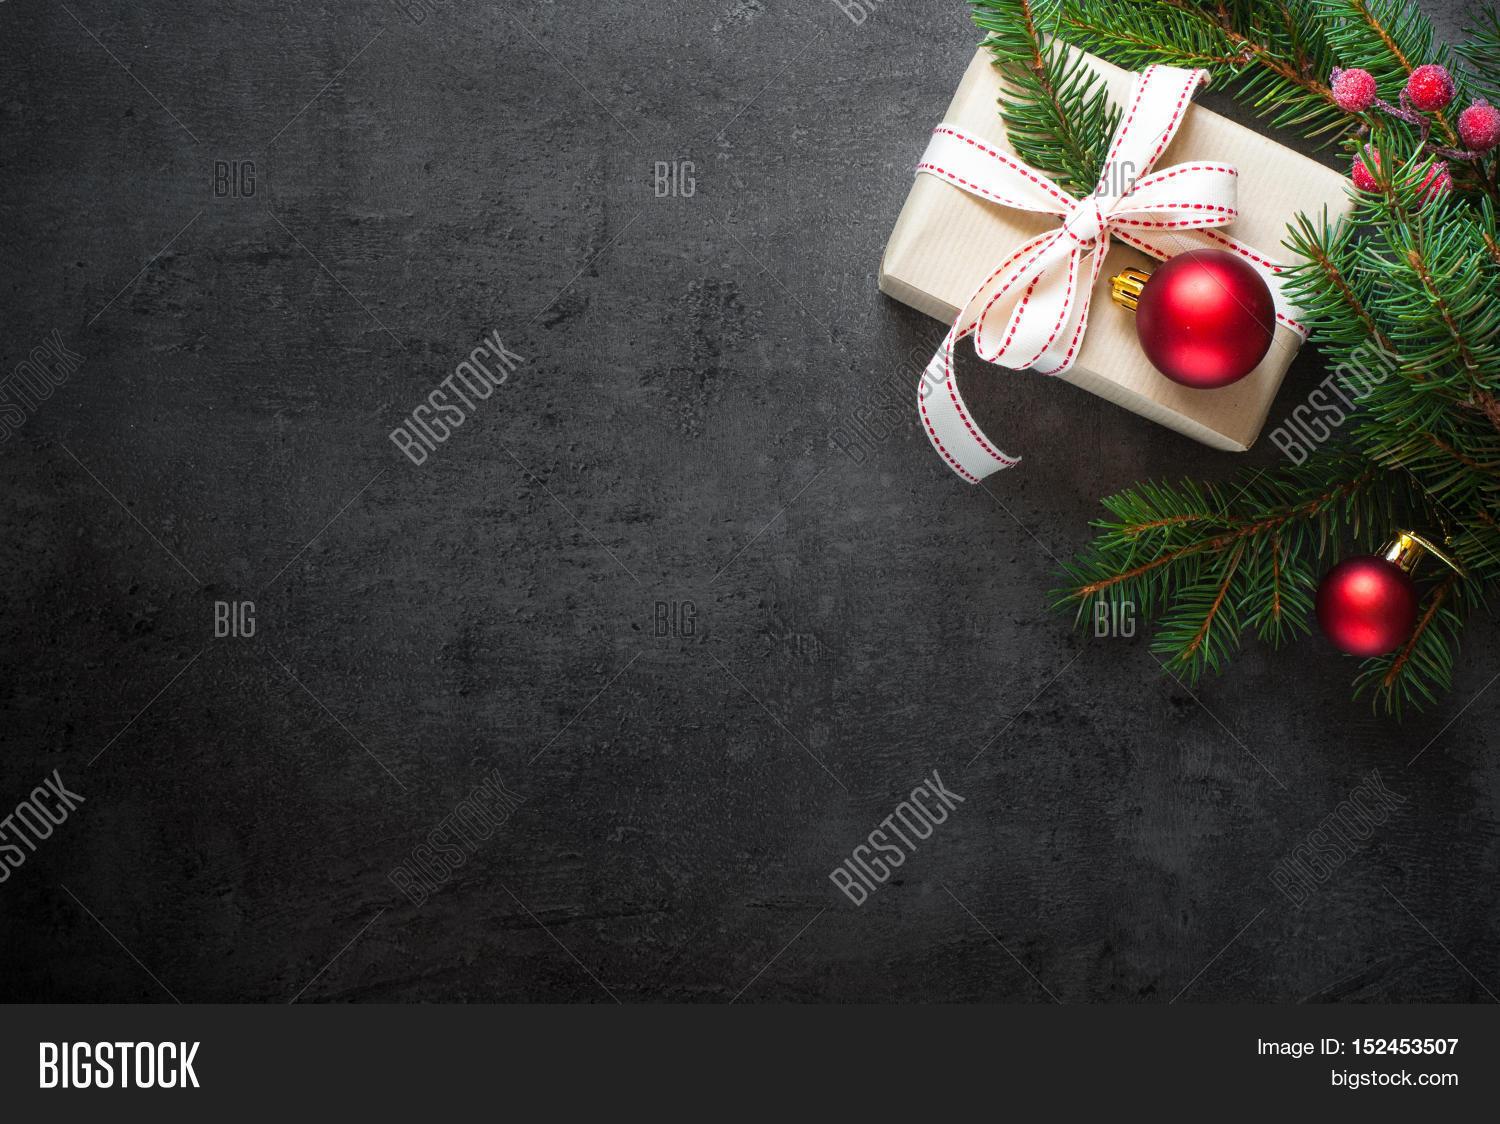 Christmas gift tree image photo free trial bigstock christmas gift tree branch and decorations on dark slate background christmas present background negle Choice Image